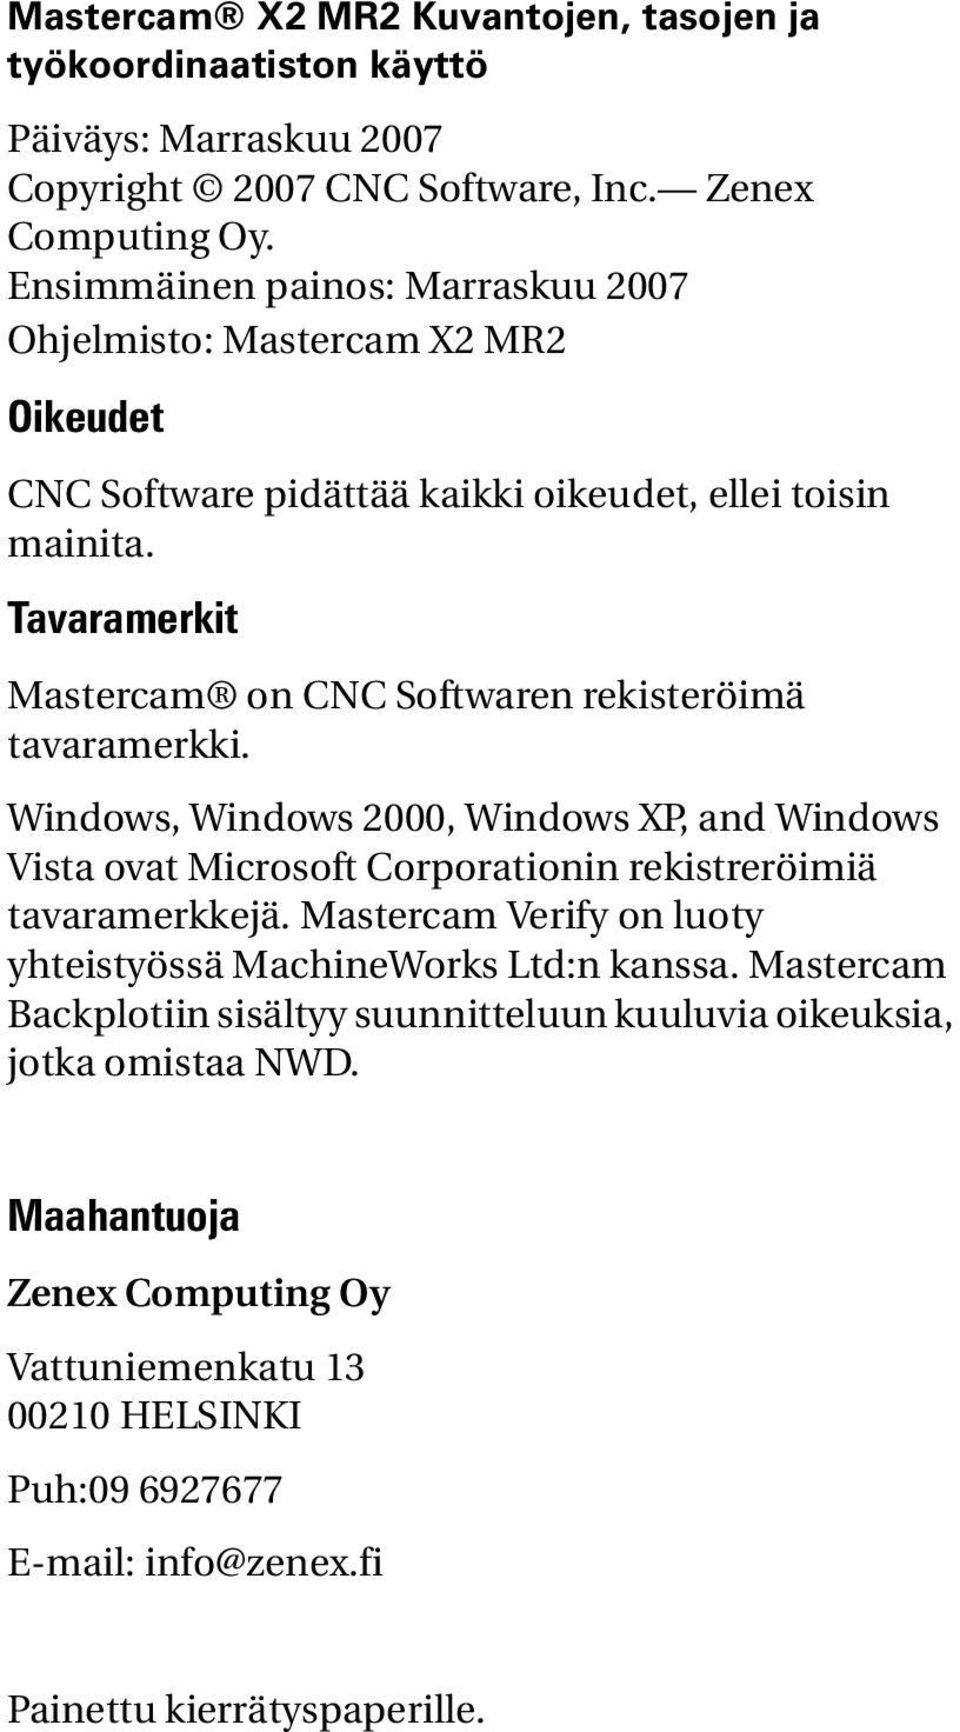 Tavaramerkit Mastercam on CNC Softwaren rekisteröimä tavaramerkki. Windows, Windows 2000, Windows XP, and Windows Vista ovat Microsoft Corporationin rekistreröimiä tavaramerkkejä.